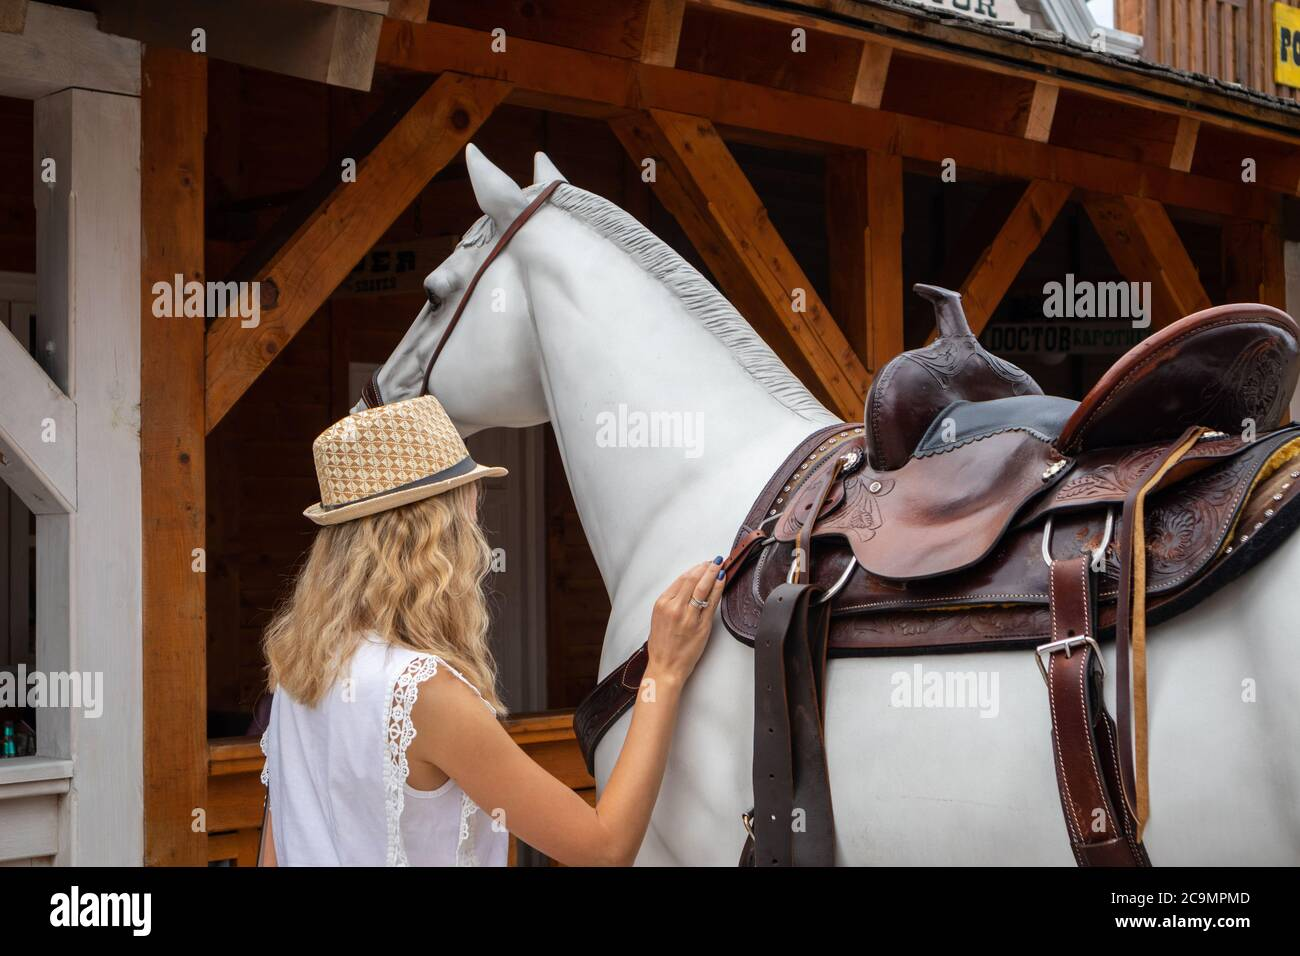 Zlatibor Vodice Serbia July 26 2020 Woman And Wooden Horse On Street In The City Of El Paso In Wild West Style And Cowboy Style Western Thematic Stock Photo Alamy